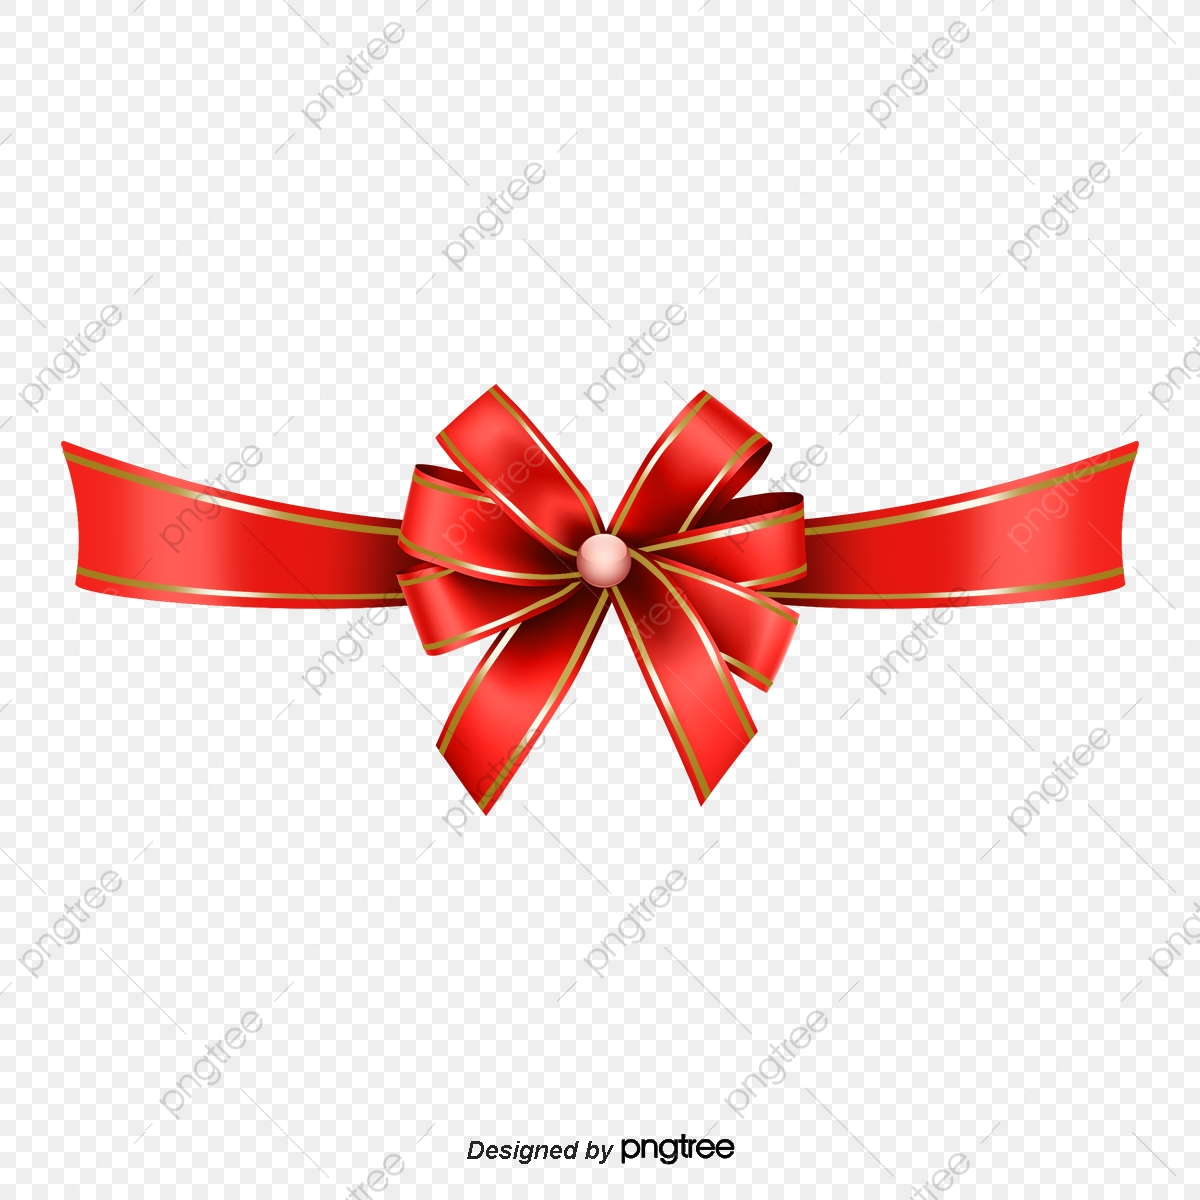 Christmas Ribbon Bow Christmas Elements Png And Vector